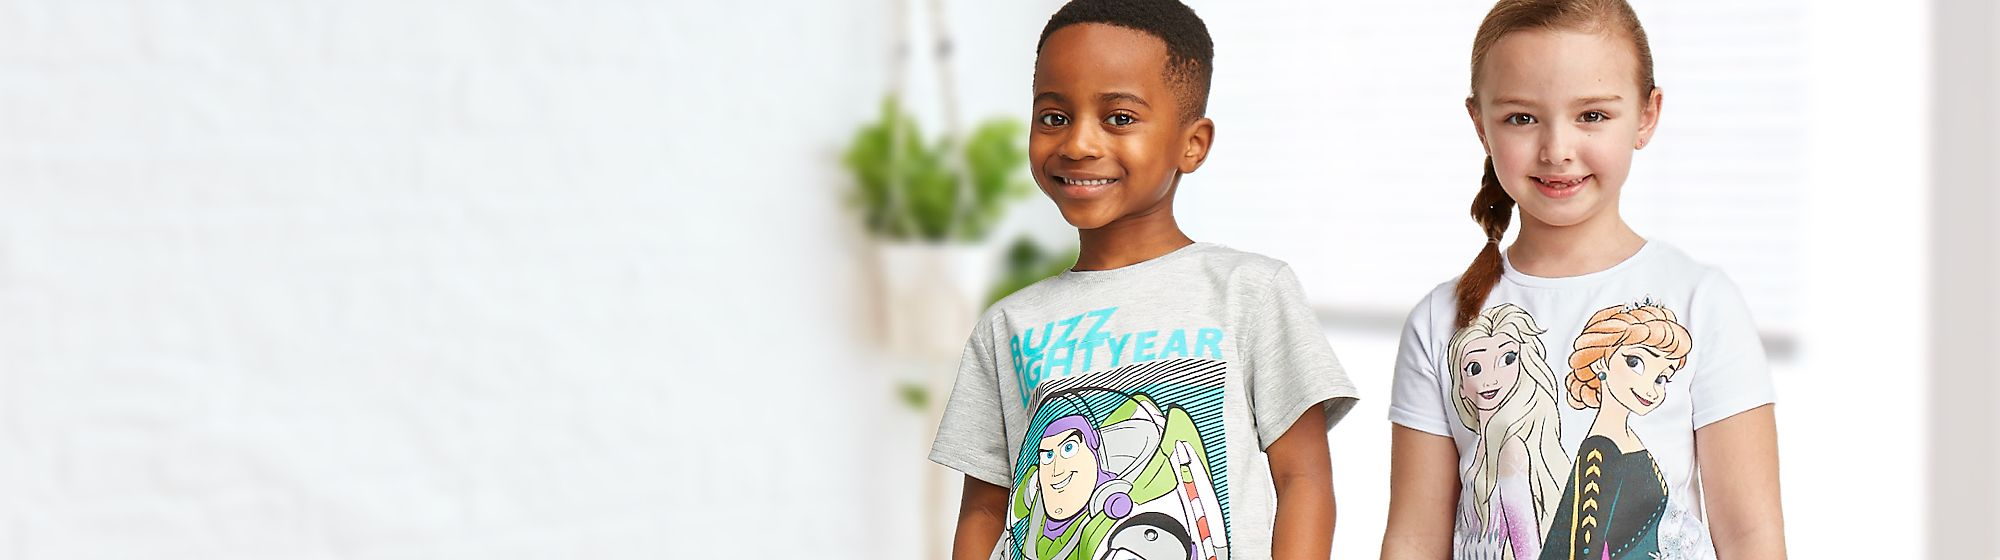 Kids' T-Shirts 1 for £10 | 2 for £16 | 3 for £20 Online Only | Selected lines | While stocks last | Terms and conditions apply